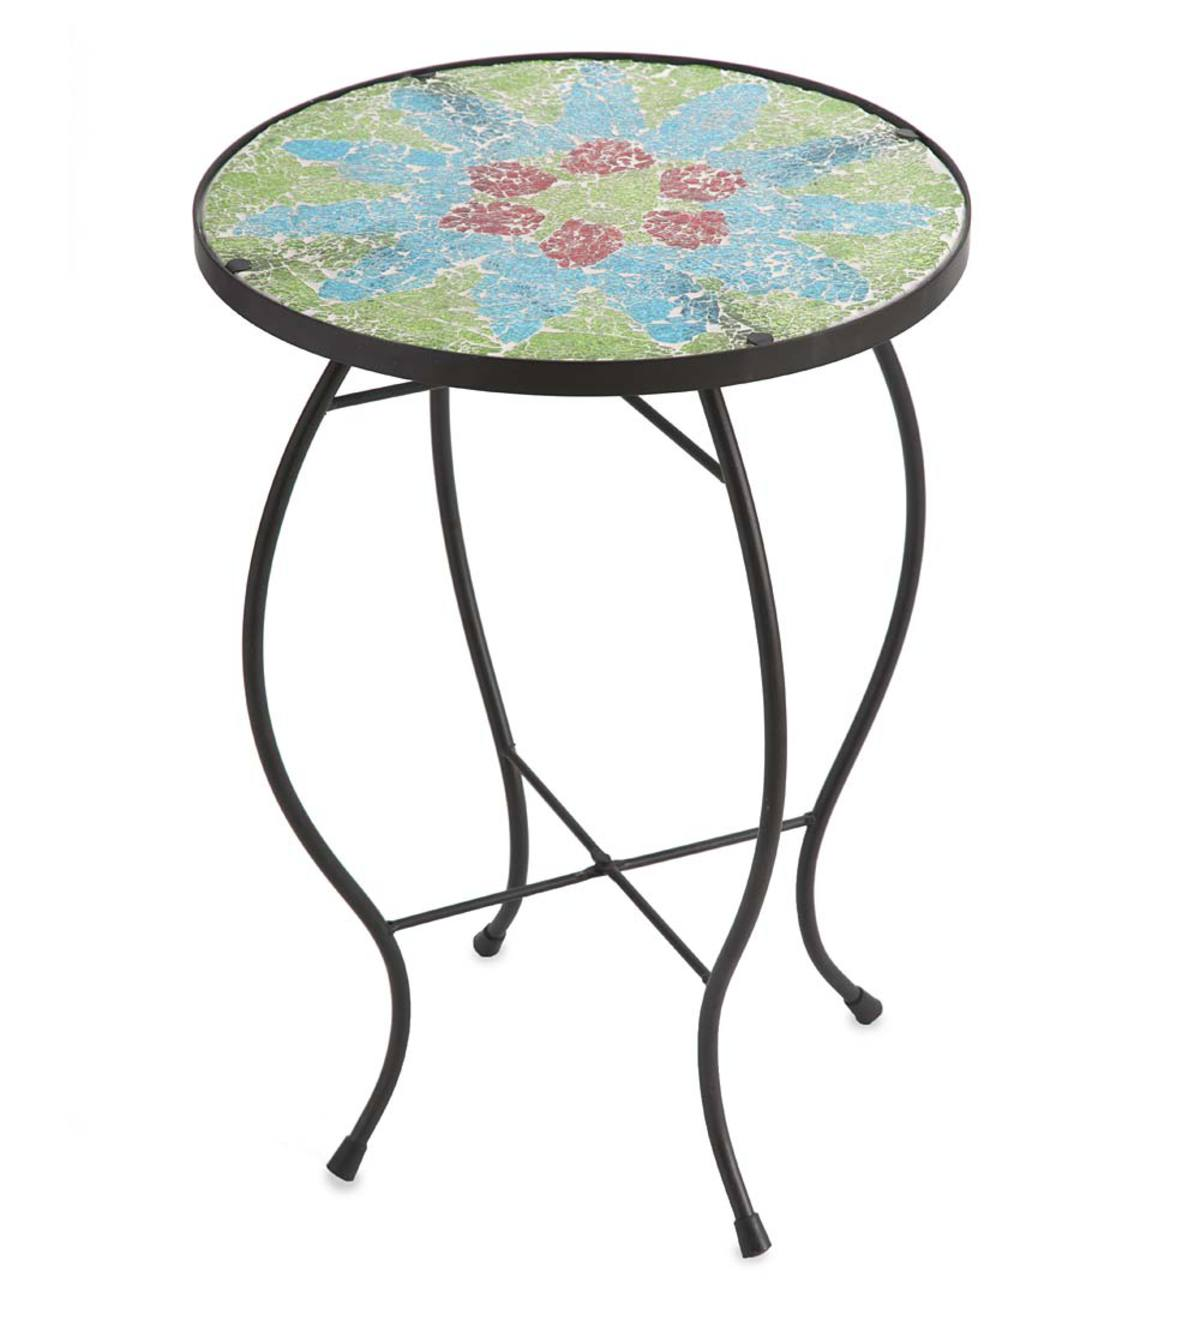 glass topped mosaic design accent table plant stand plowhearth green metal legs gold decorative accessories drummer stool adjustable height nic bench comfortable drum throne